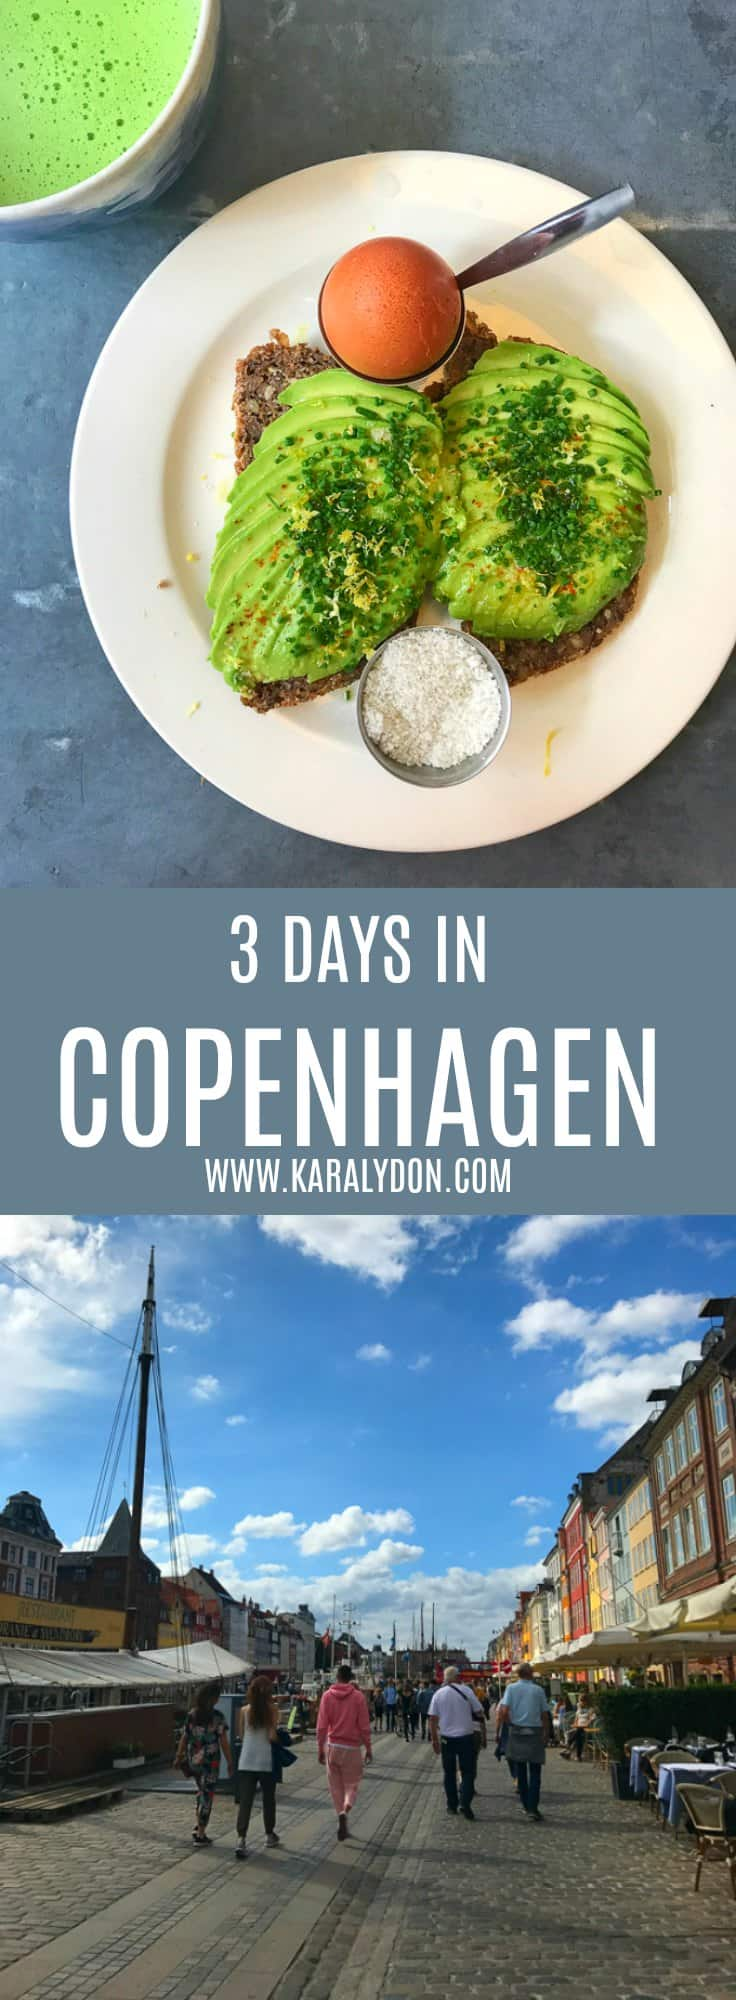 Recapping my 3 days in Copenhagen and sharing where to eat if you're a foodie like me and what to see!